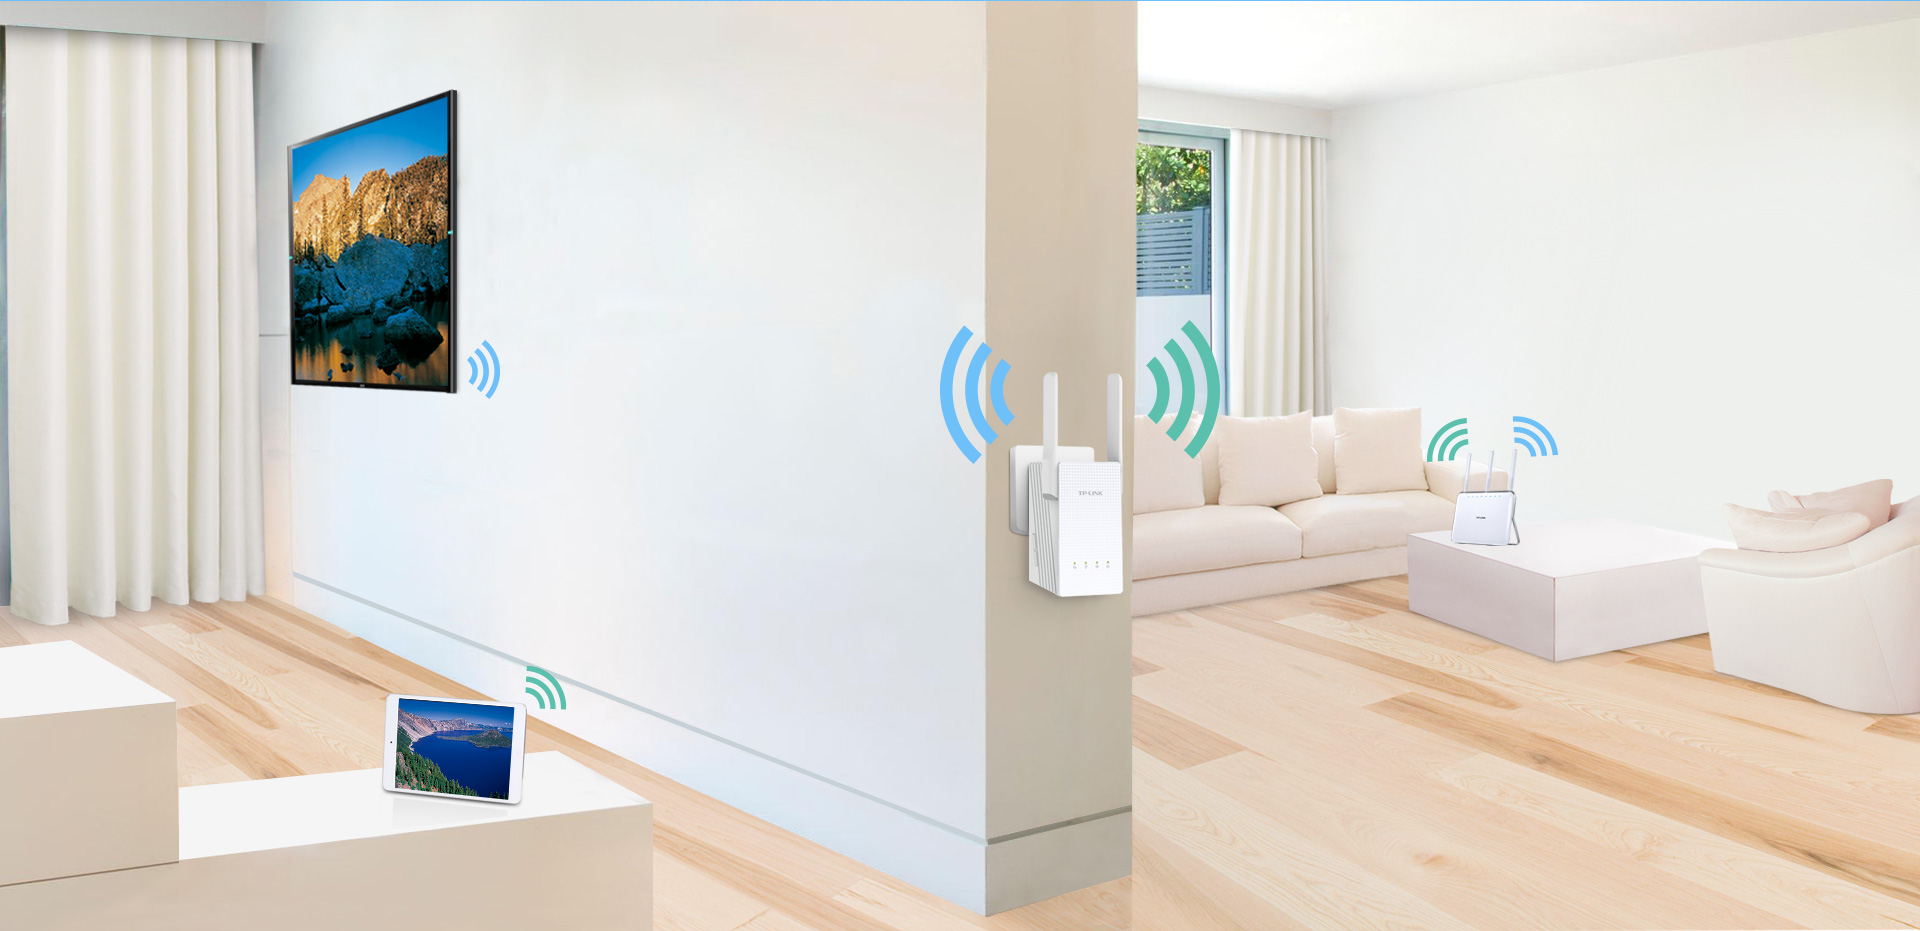 This high-end WiFi range extender is an elegant solution to